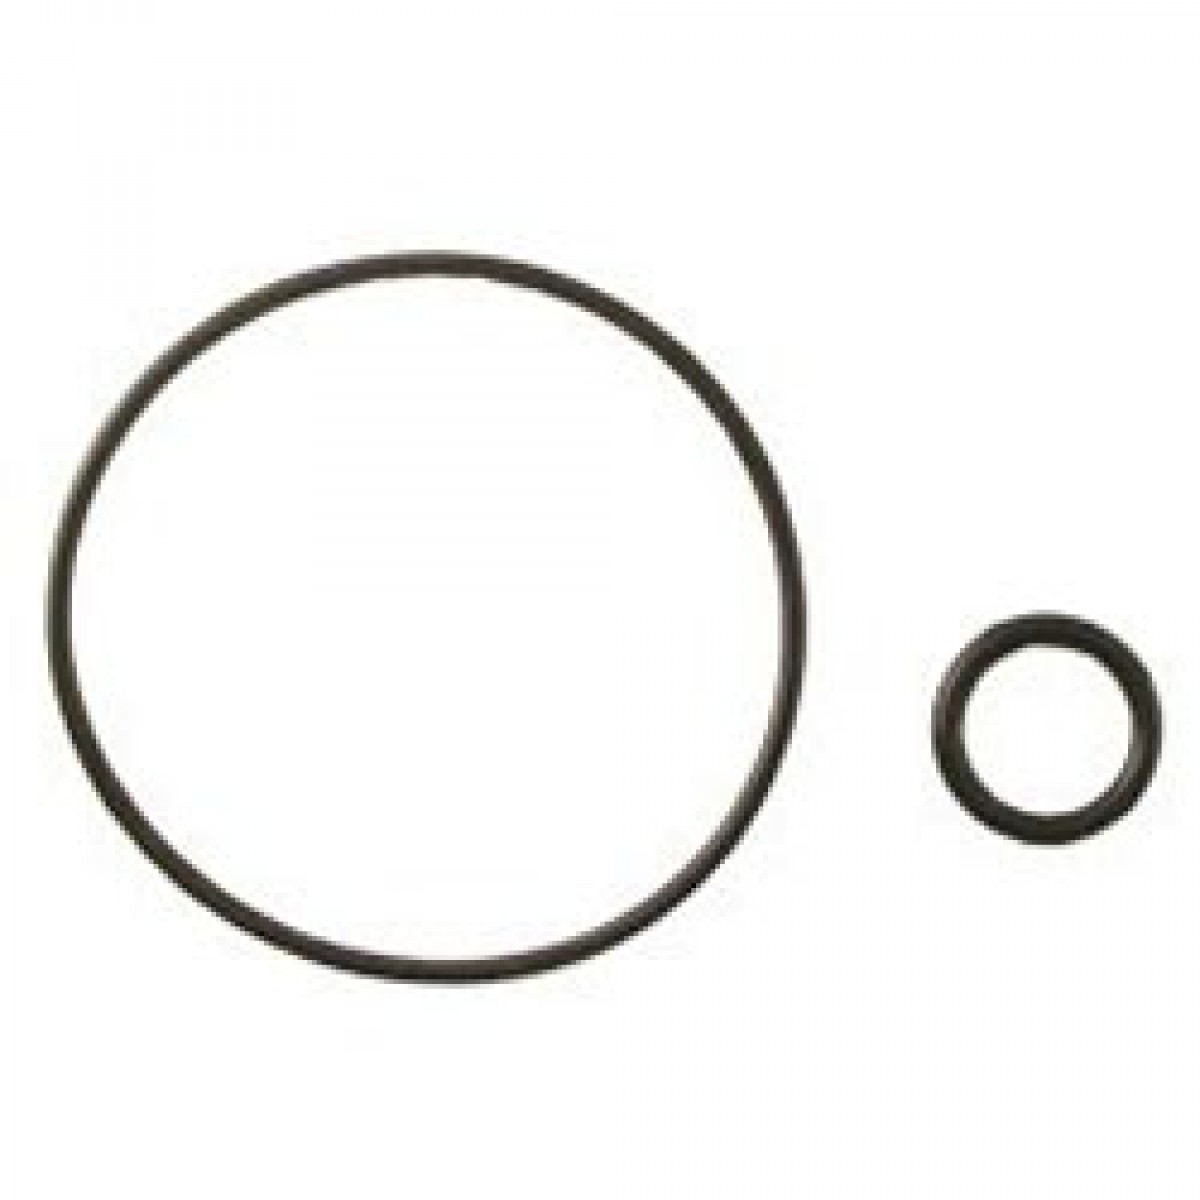 P Omnifilter Faucet Filter O Rings